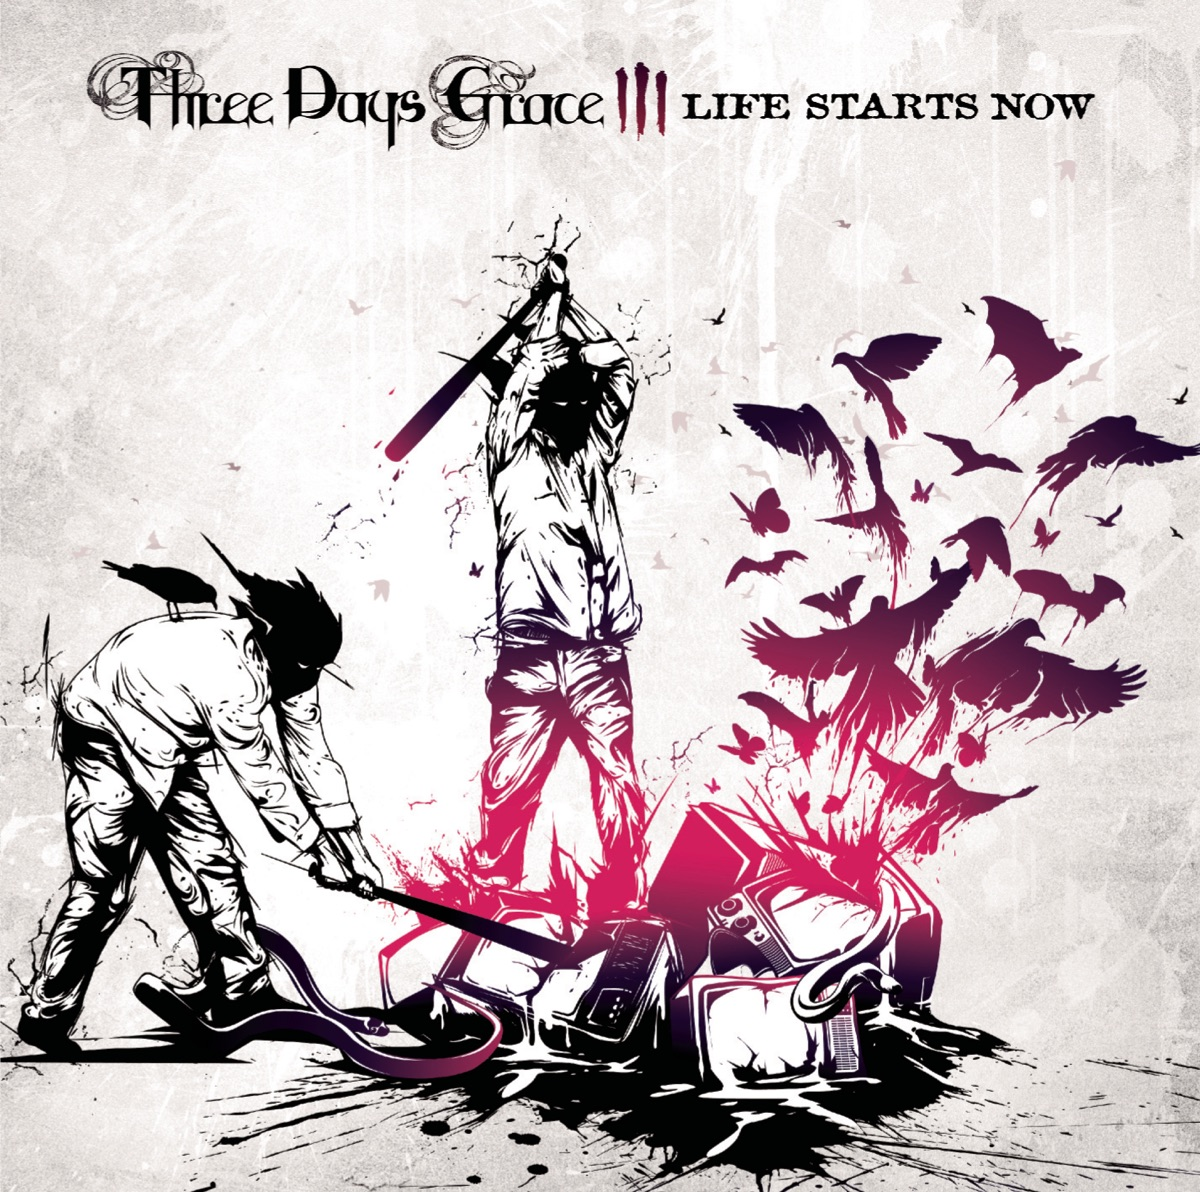 Life Starts Now Three Days Grace CD cover